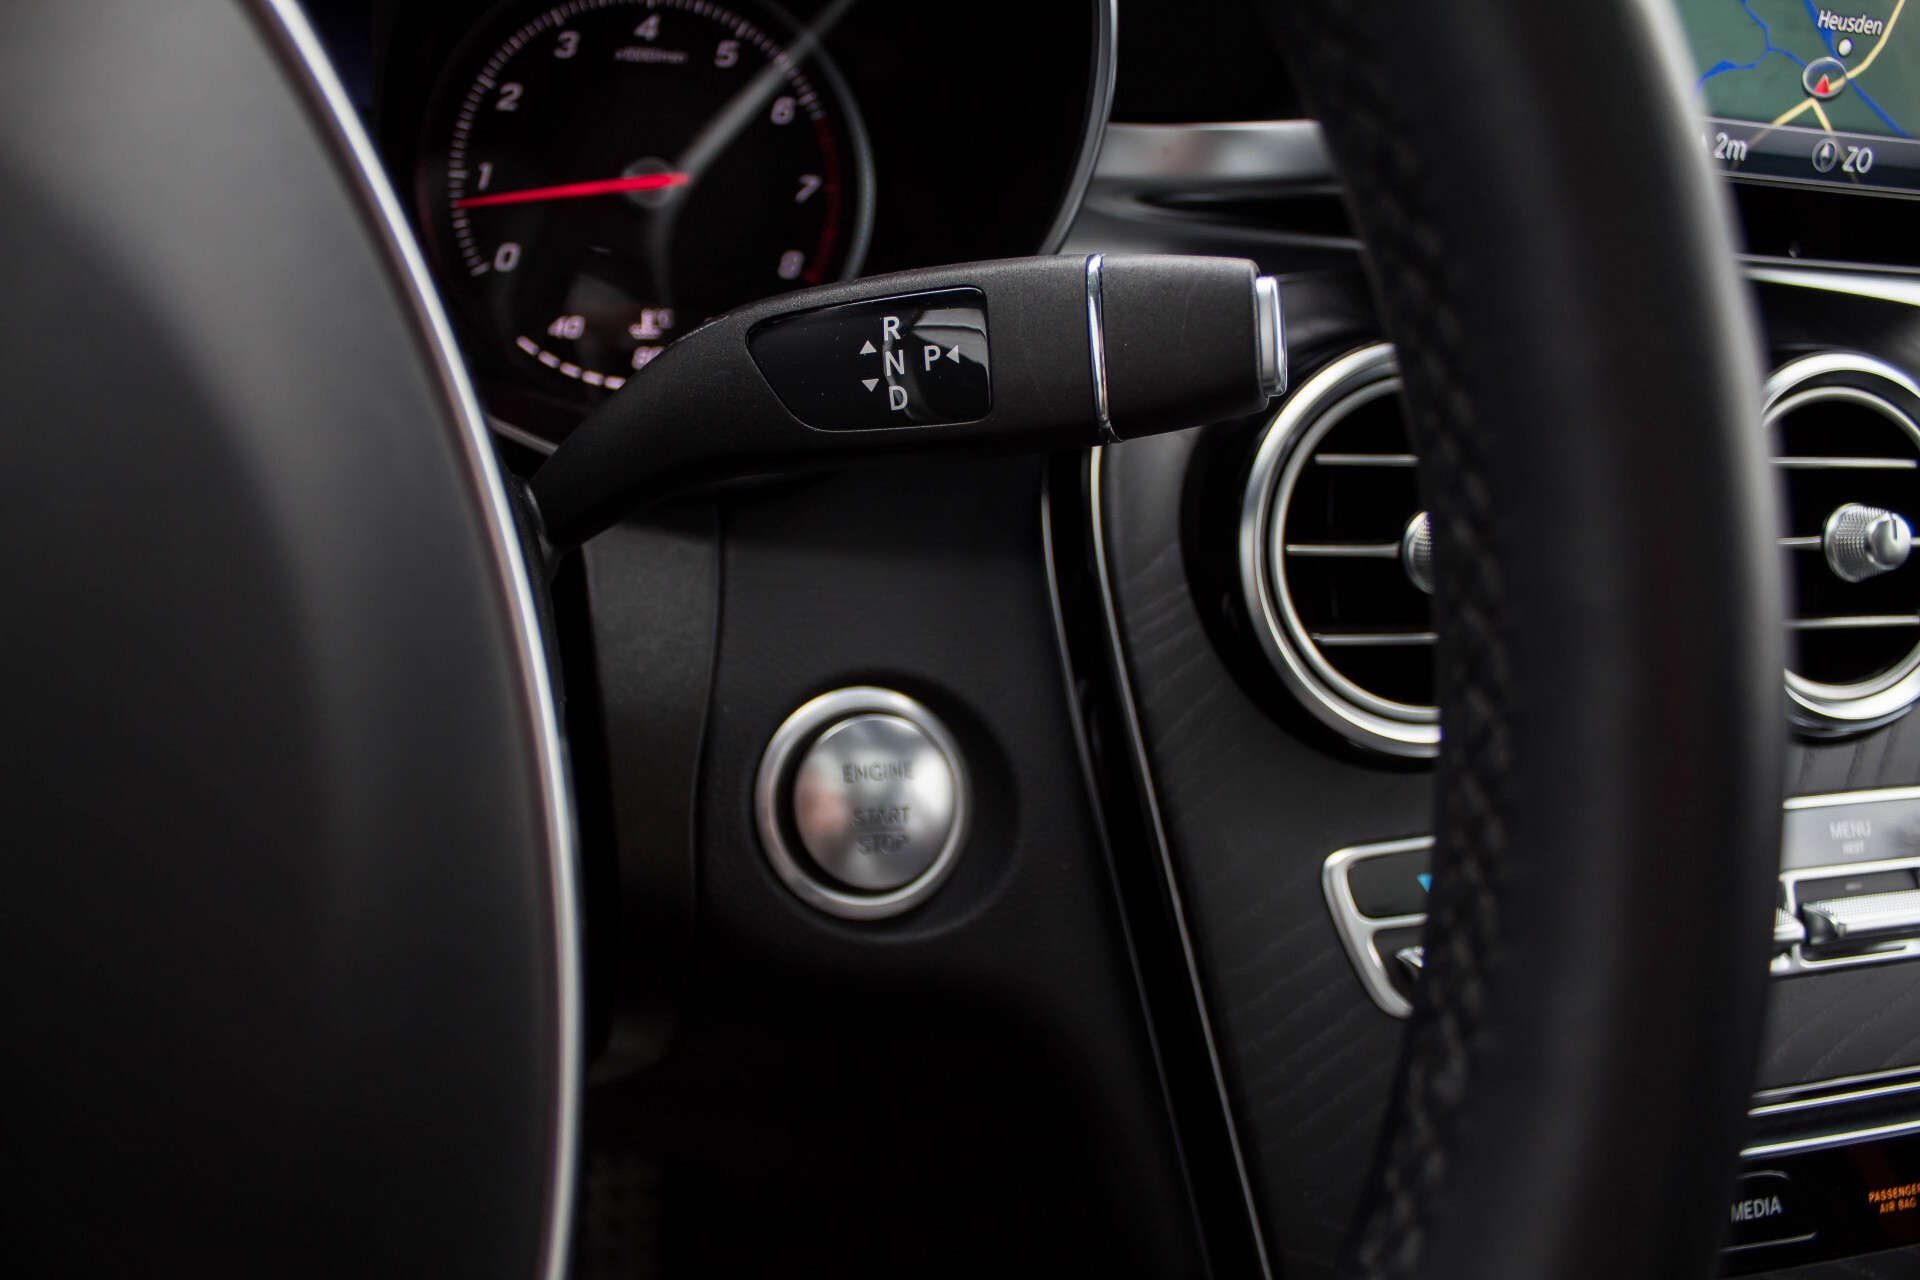 Mercedes-Benz GLC-Klasse 300 4-M AMG Panorama Distronic/Keyless/Burmester/Memory/Night Aut9 Foto 12